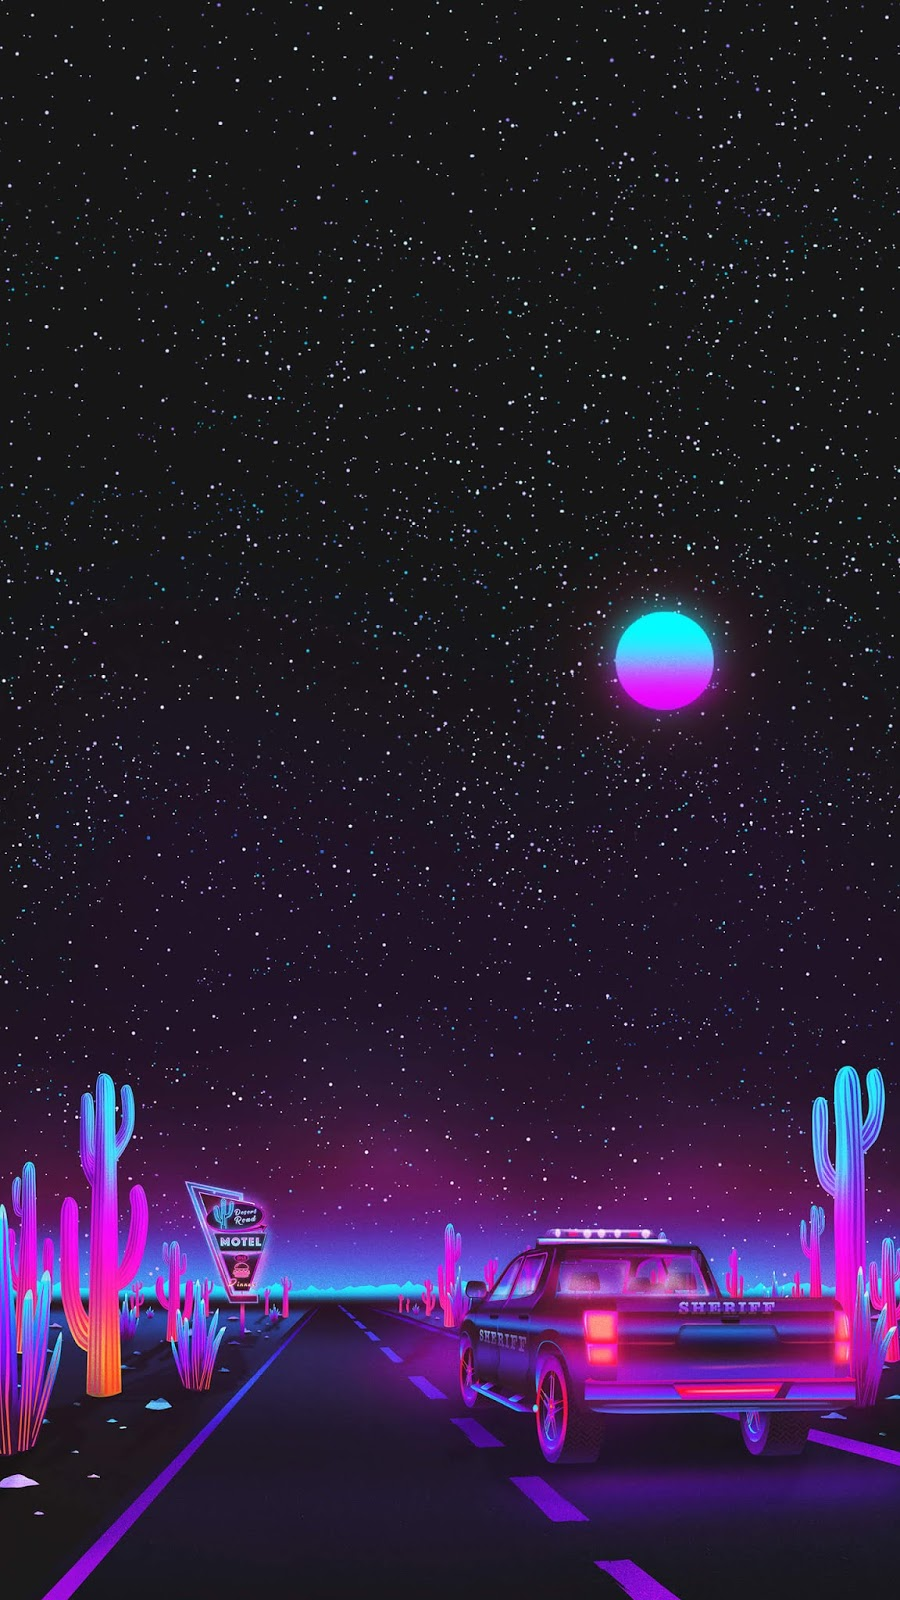 Vaporwave night sky